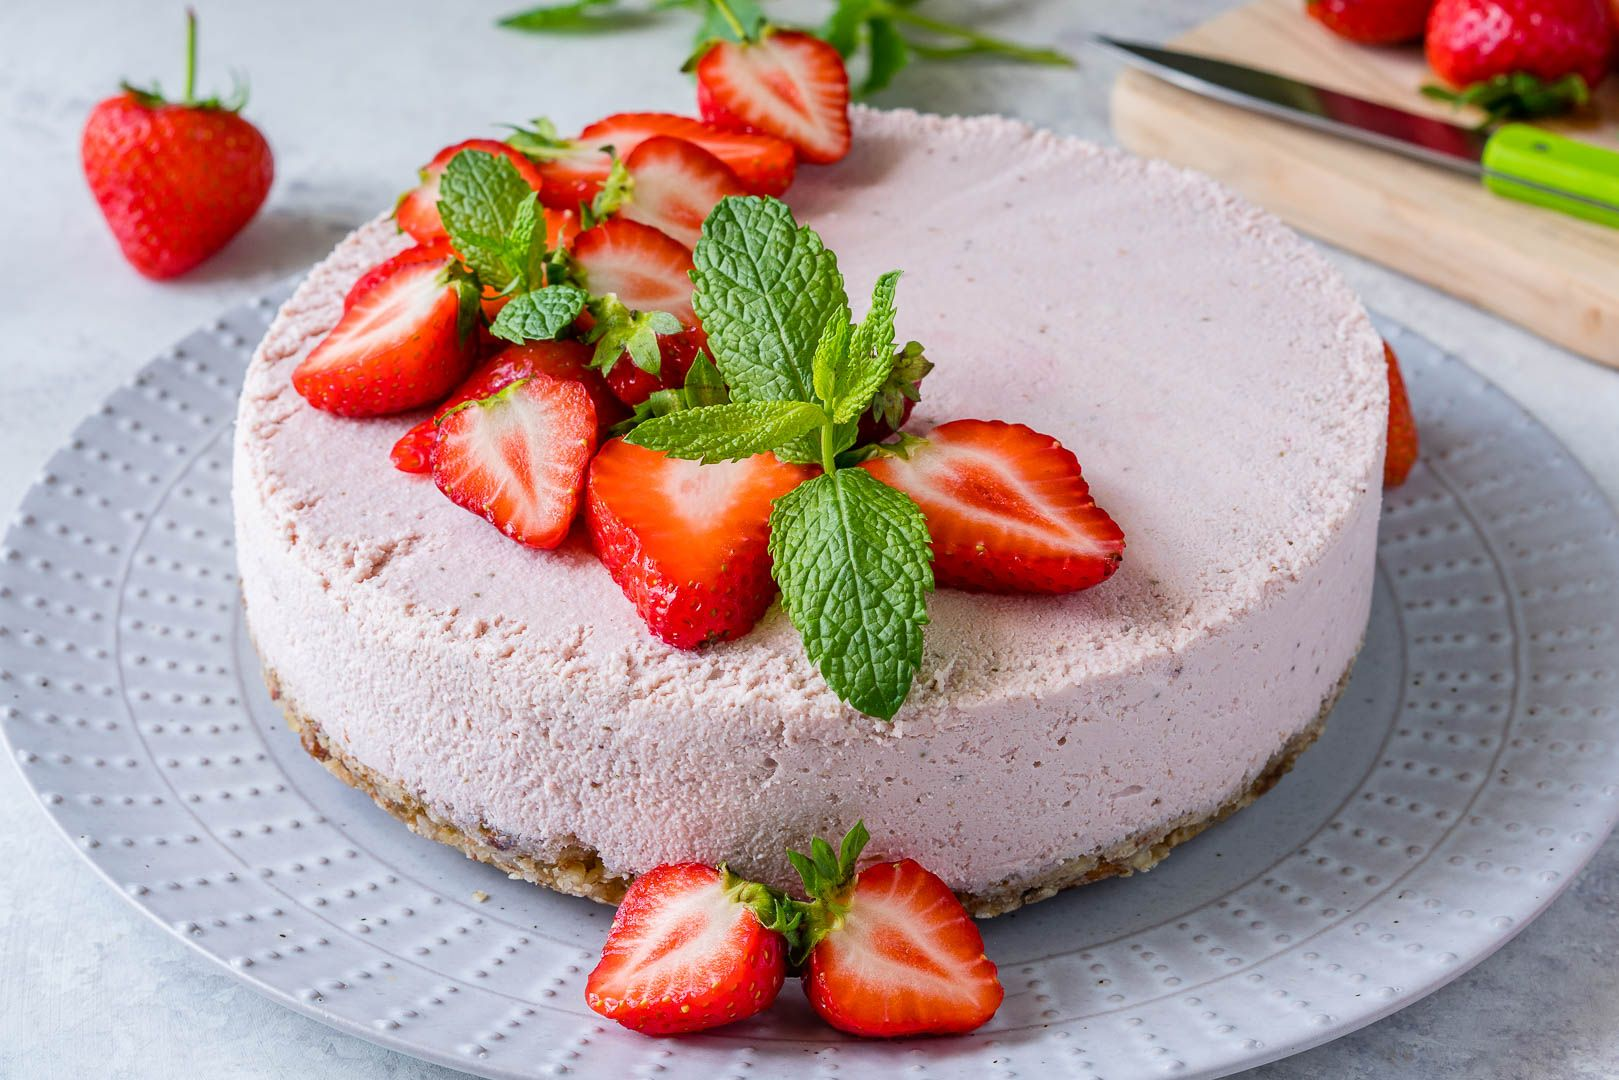 This Yummy No Bake Strawberry Cheesecake is Clean Eating Friendly! - Clean Food Crush